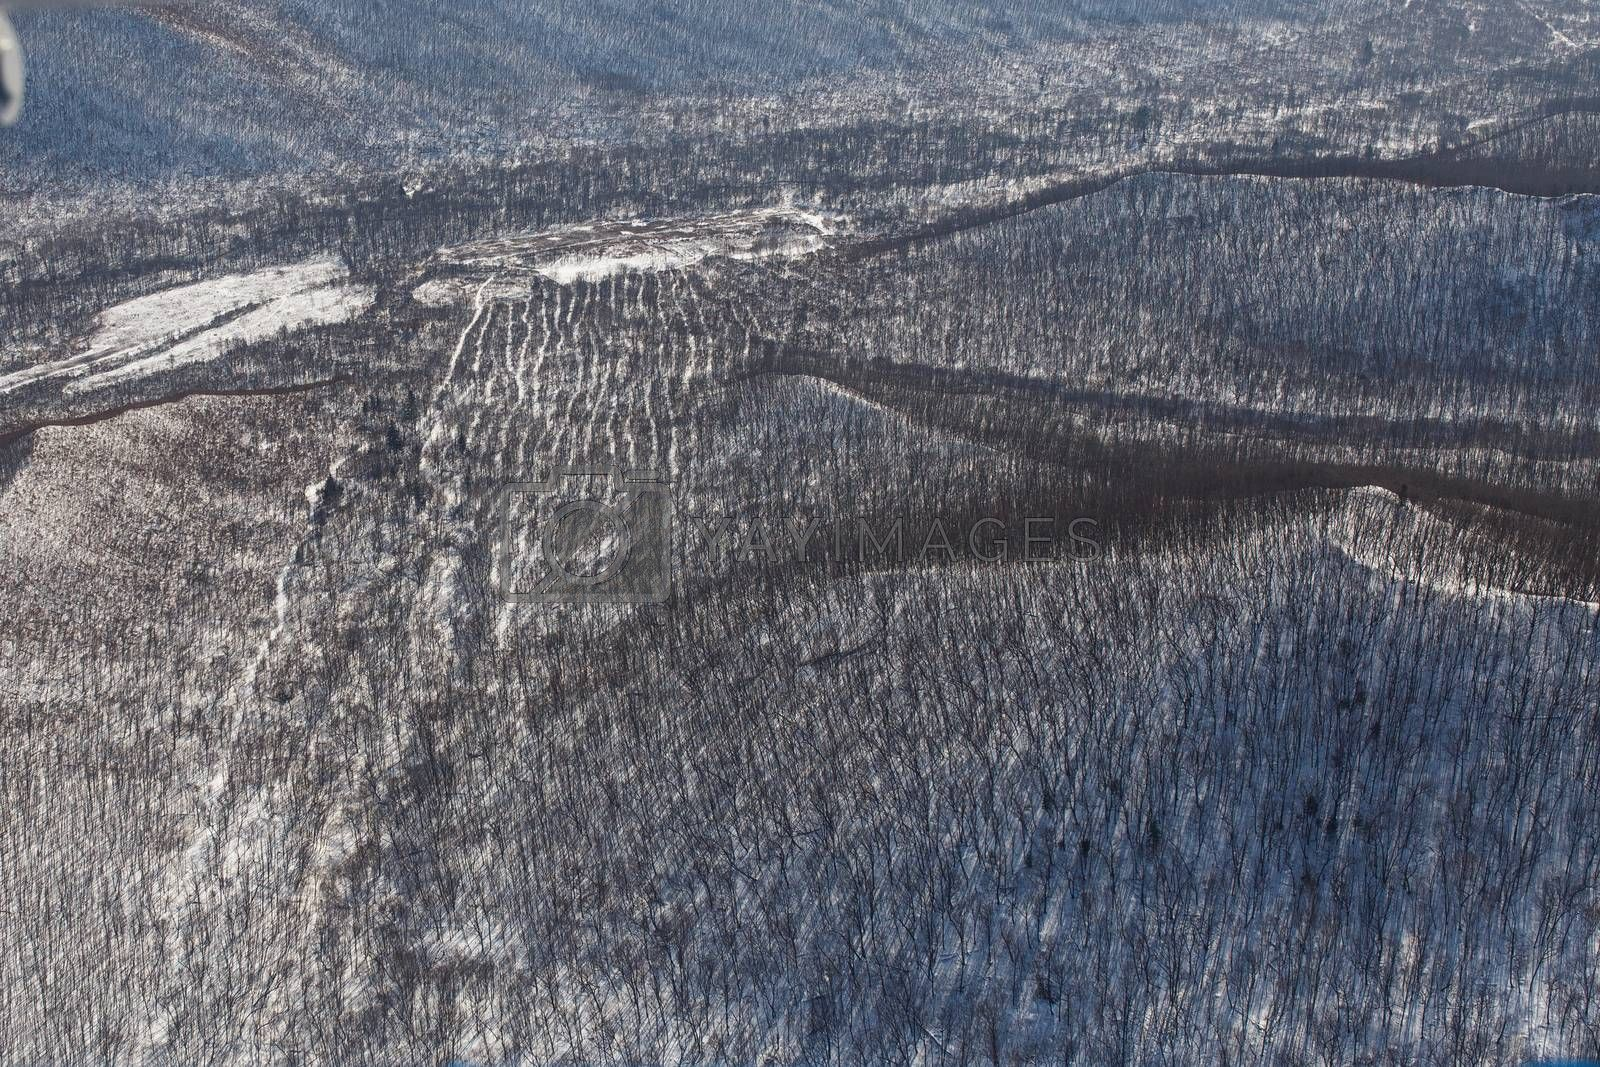 Winter coniferous forest, captured from a helicopter